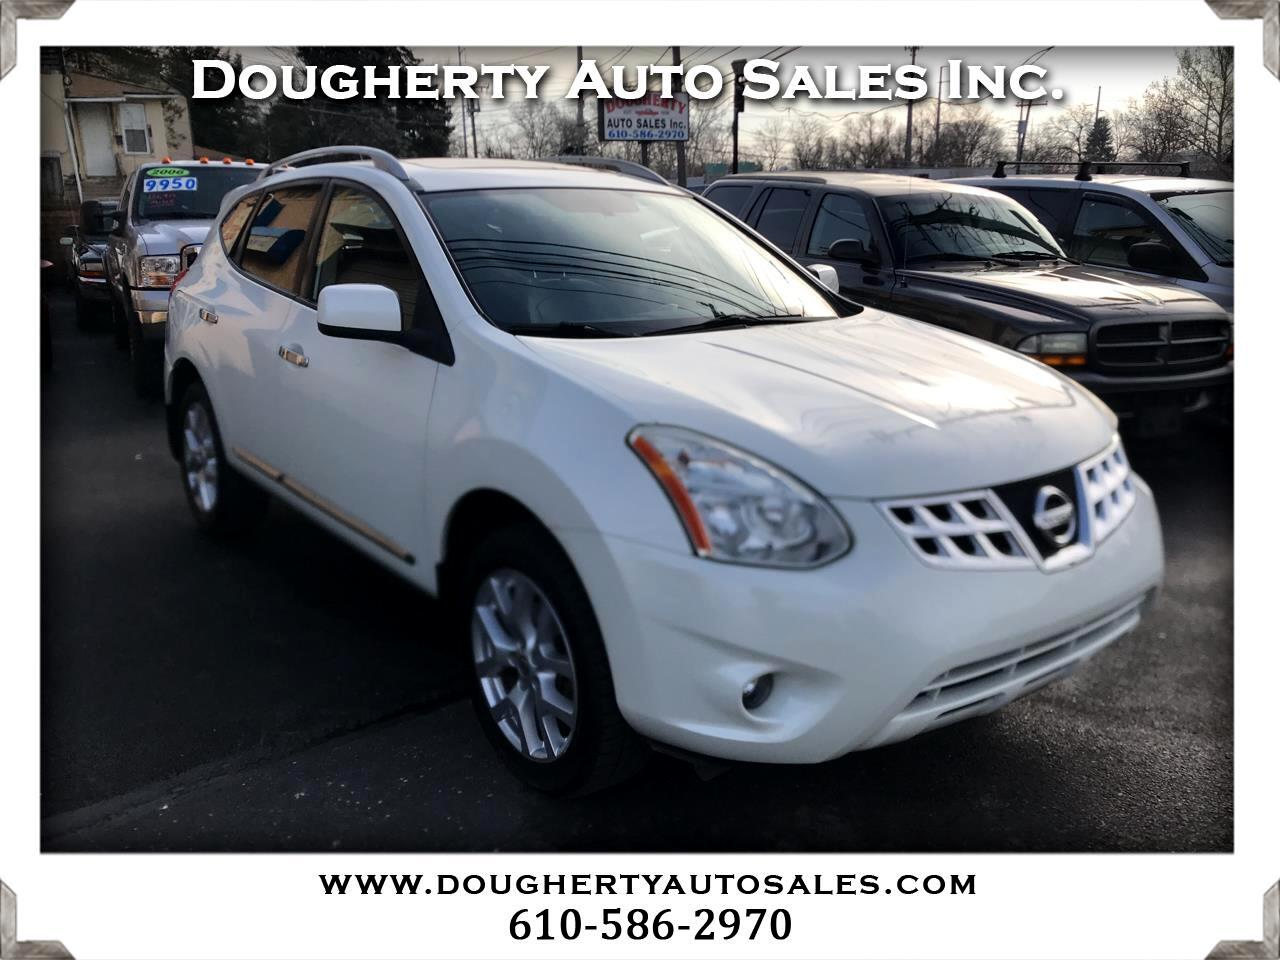 2011 Nissan Rogue AWD 4DR SL